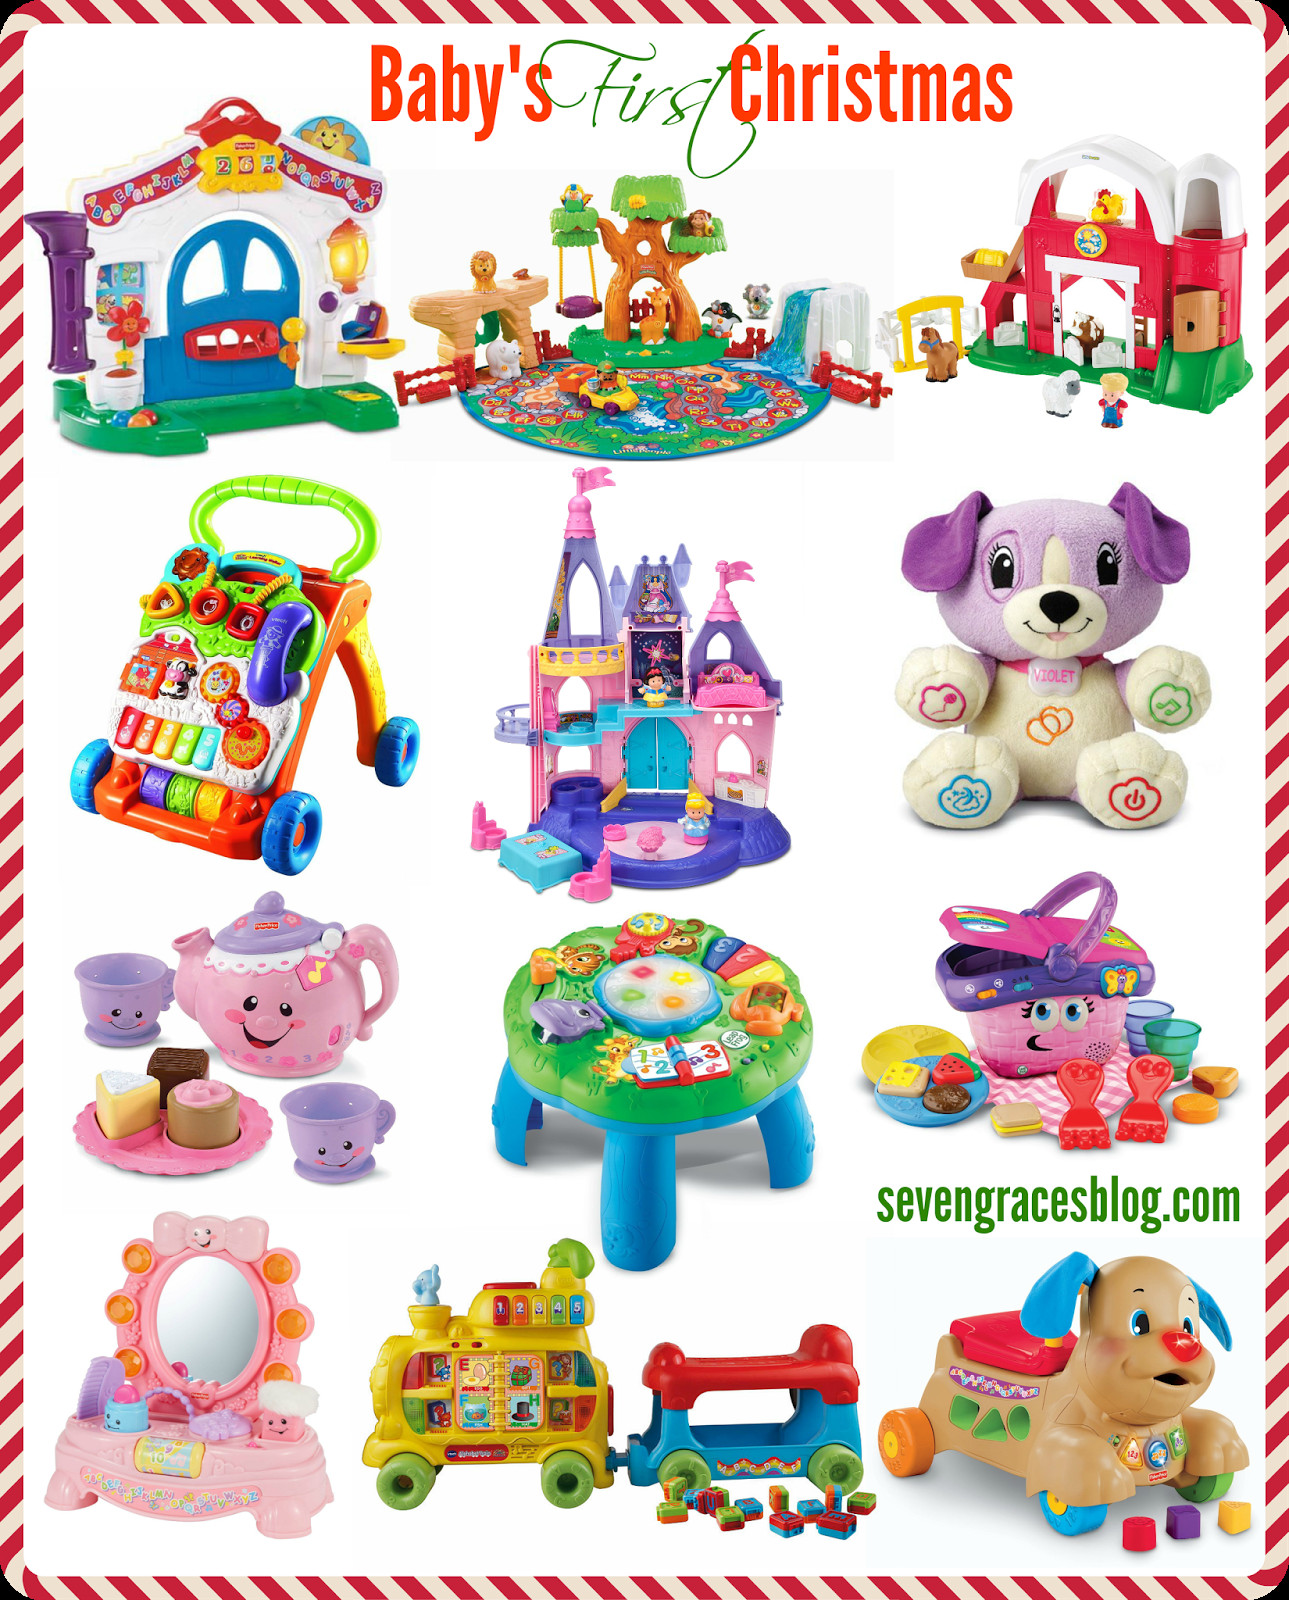 Best ideas about Baby 1St Christmas Gift Ideas . Save or Pin Best Gifts for Baby s First Christmas Seven Graces Now.